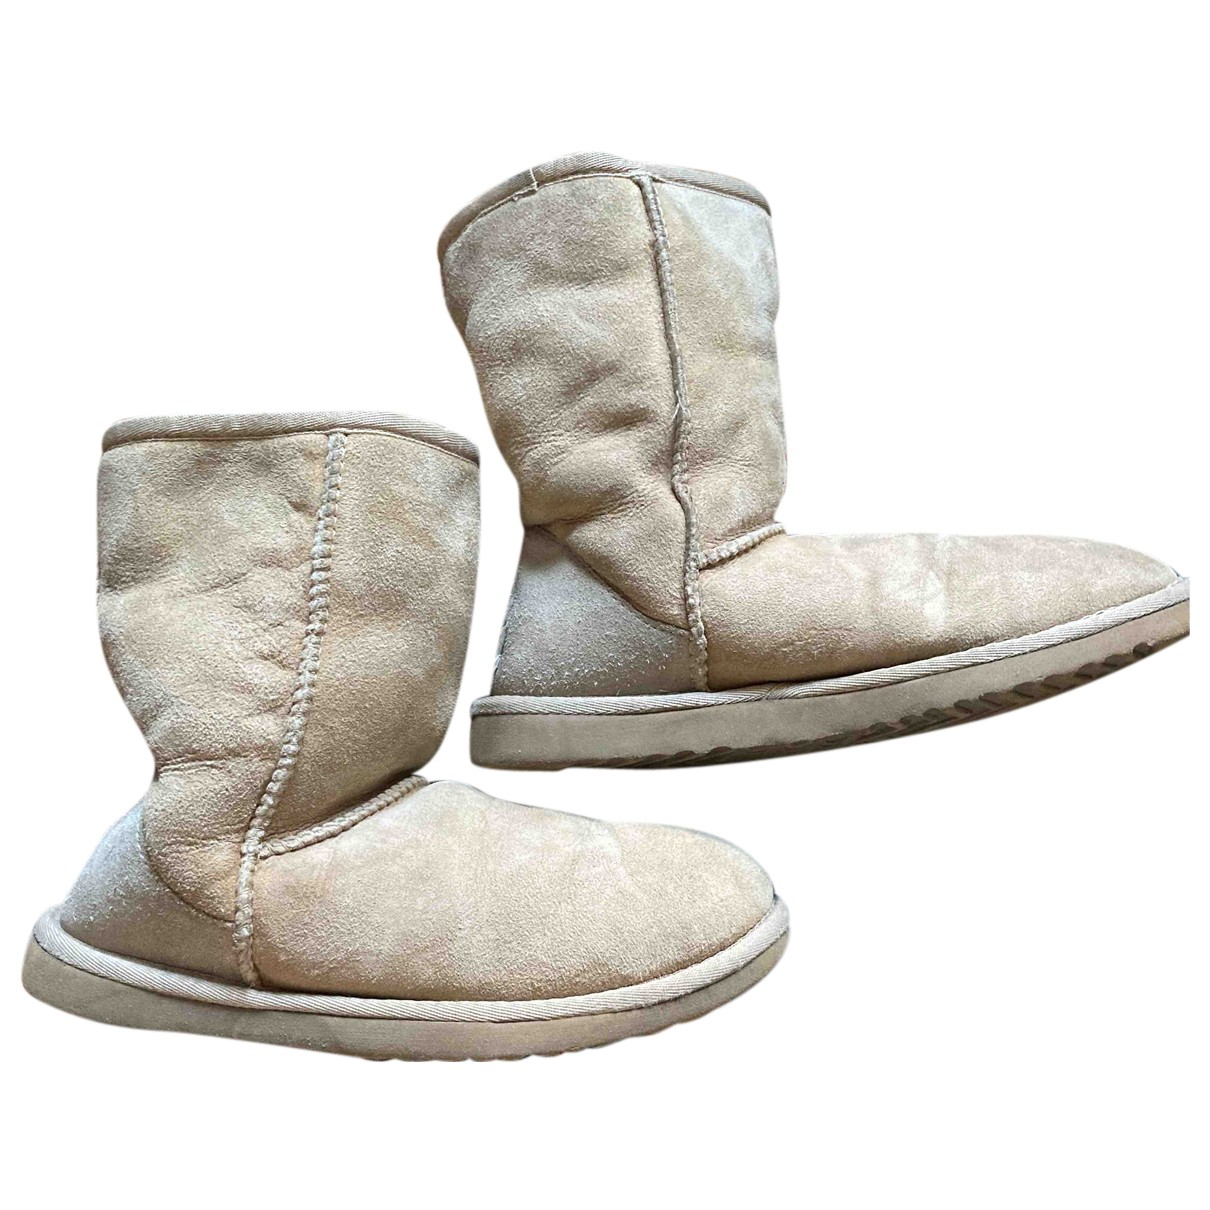 Ugg N Beige Suede Ankle boots for Women 5 US